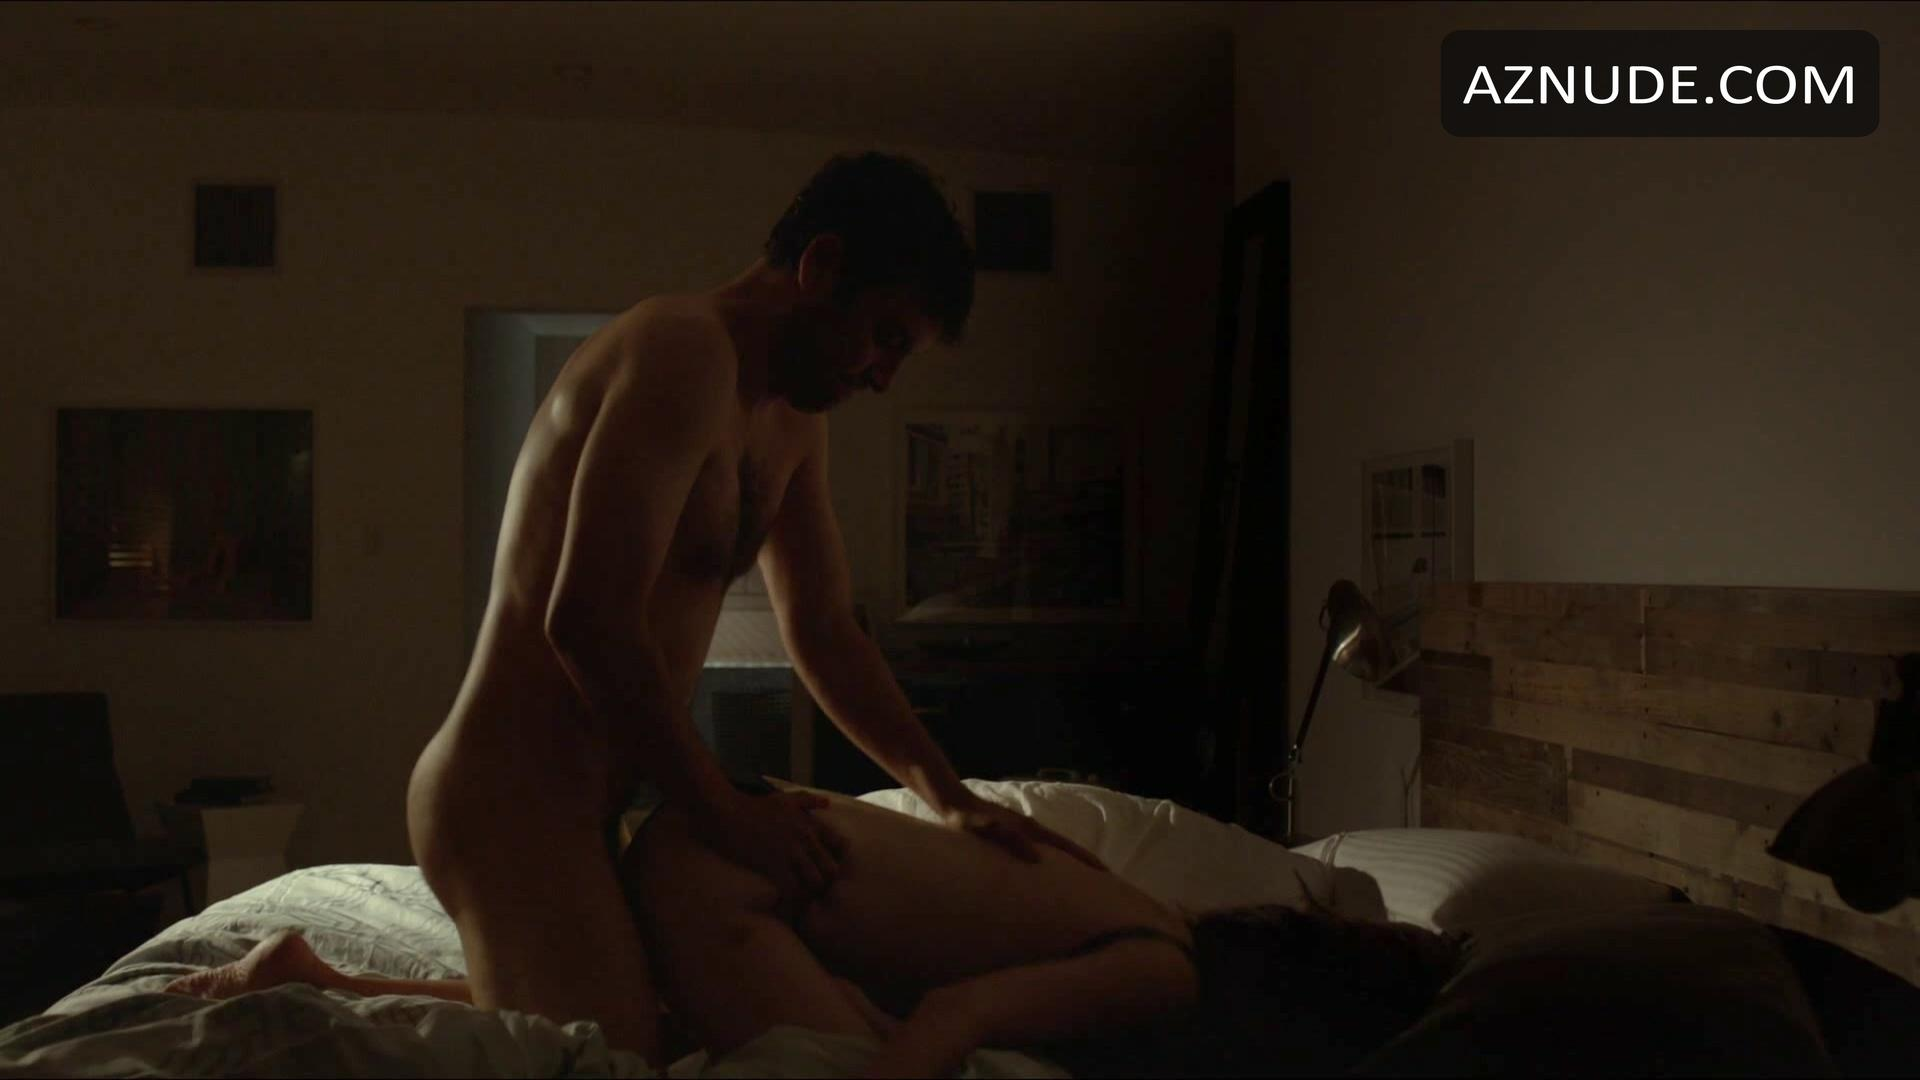 Browse Celebrity Sexy Images - Page 15 - Aznude Men-9826